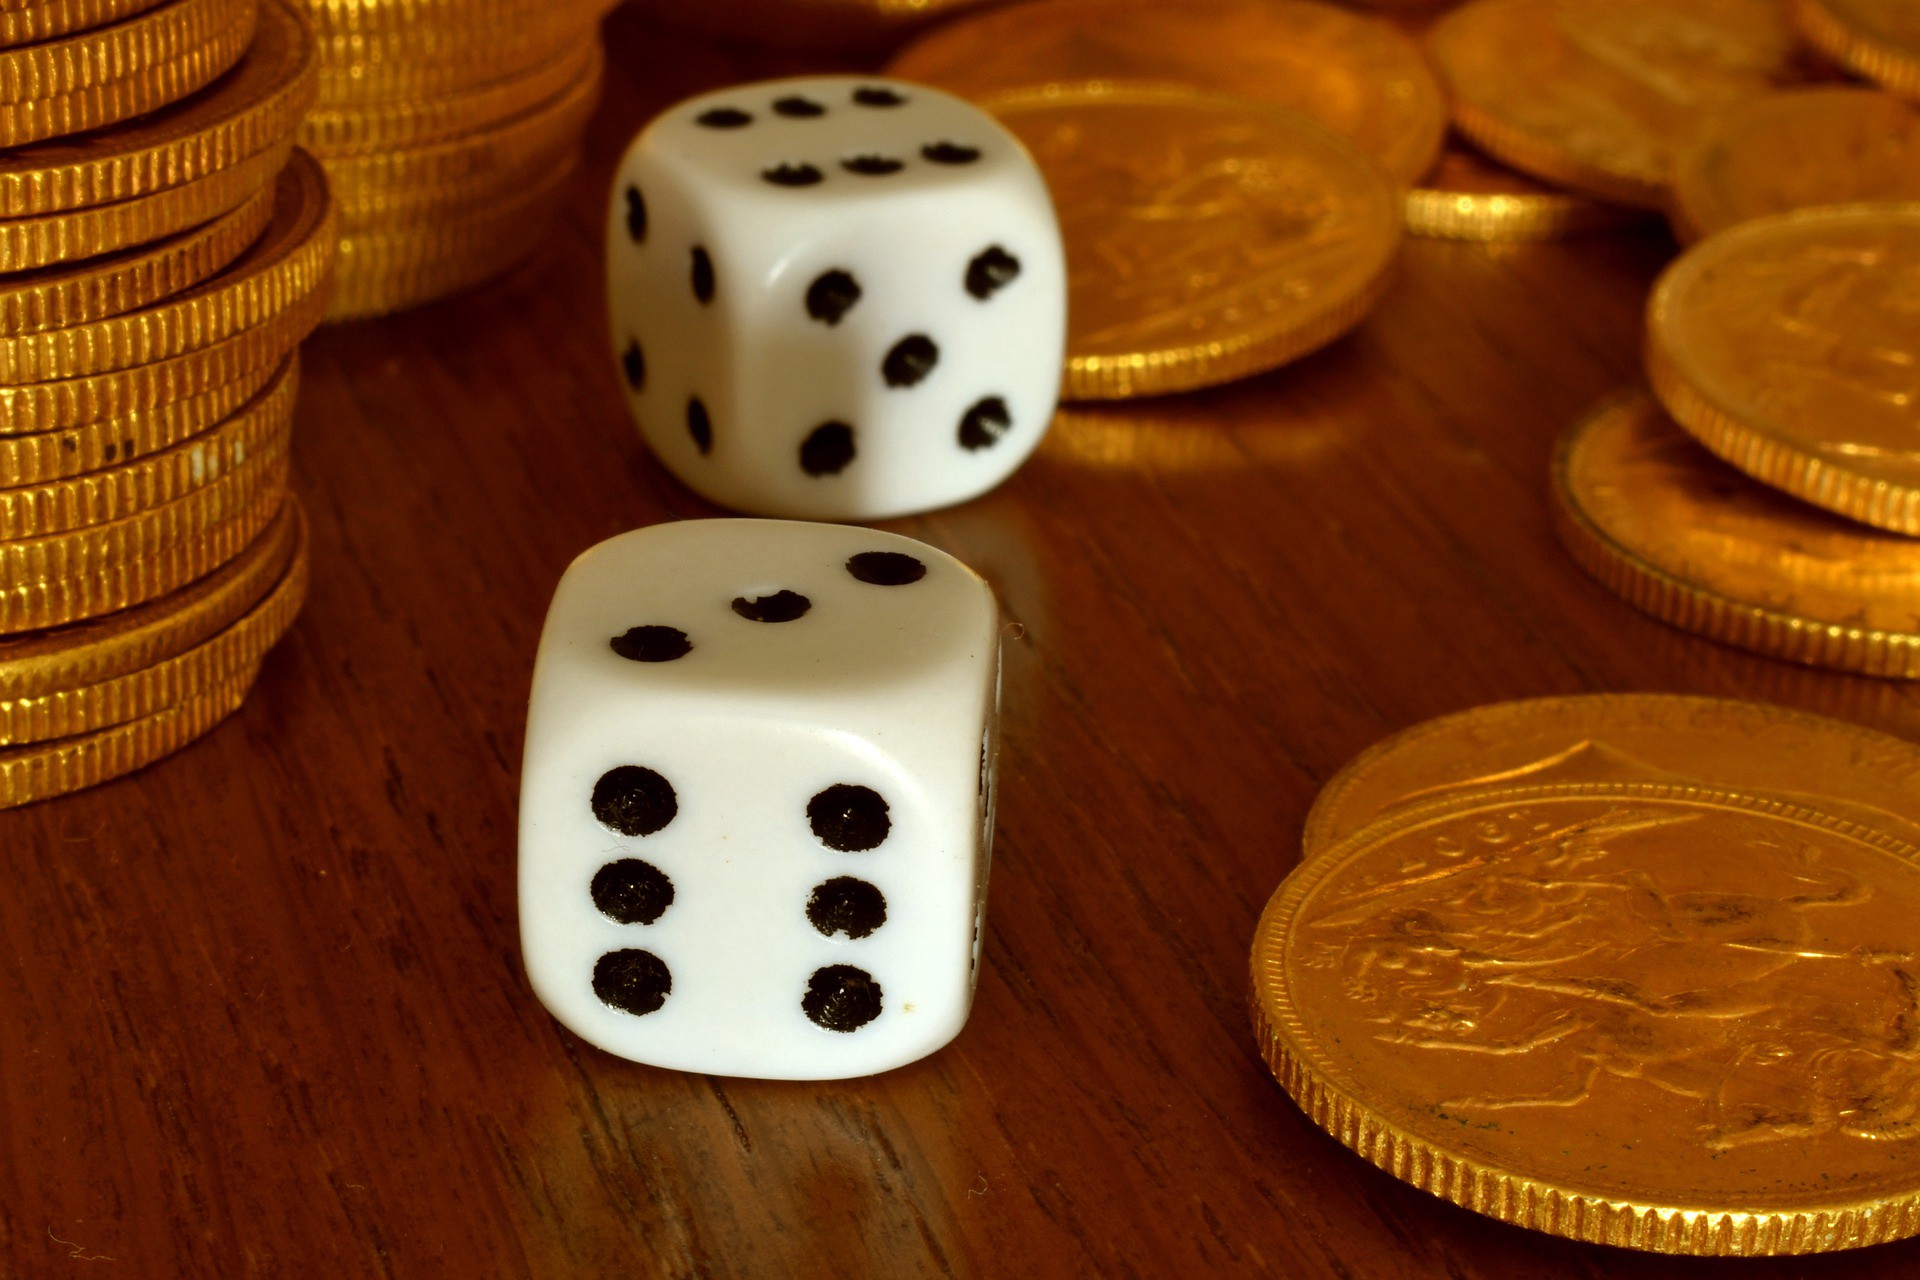 Two dice and coins